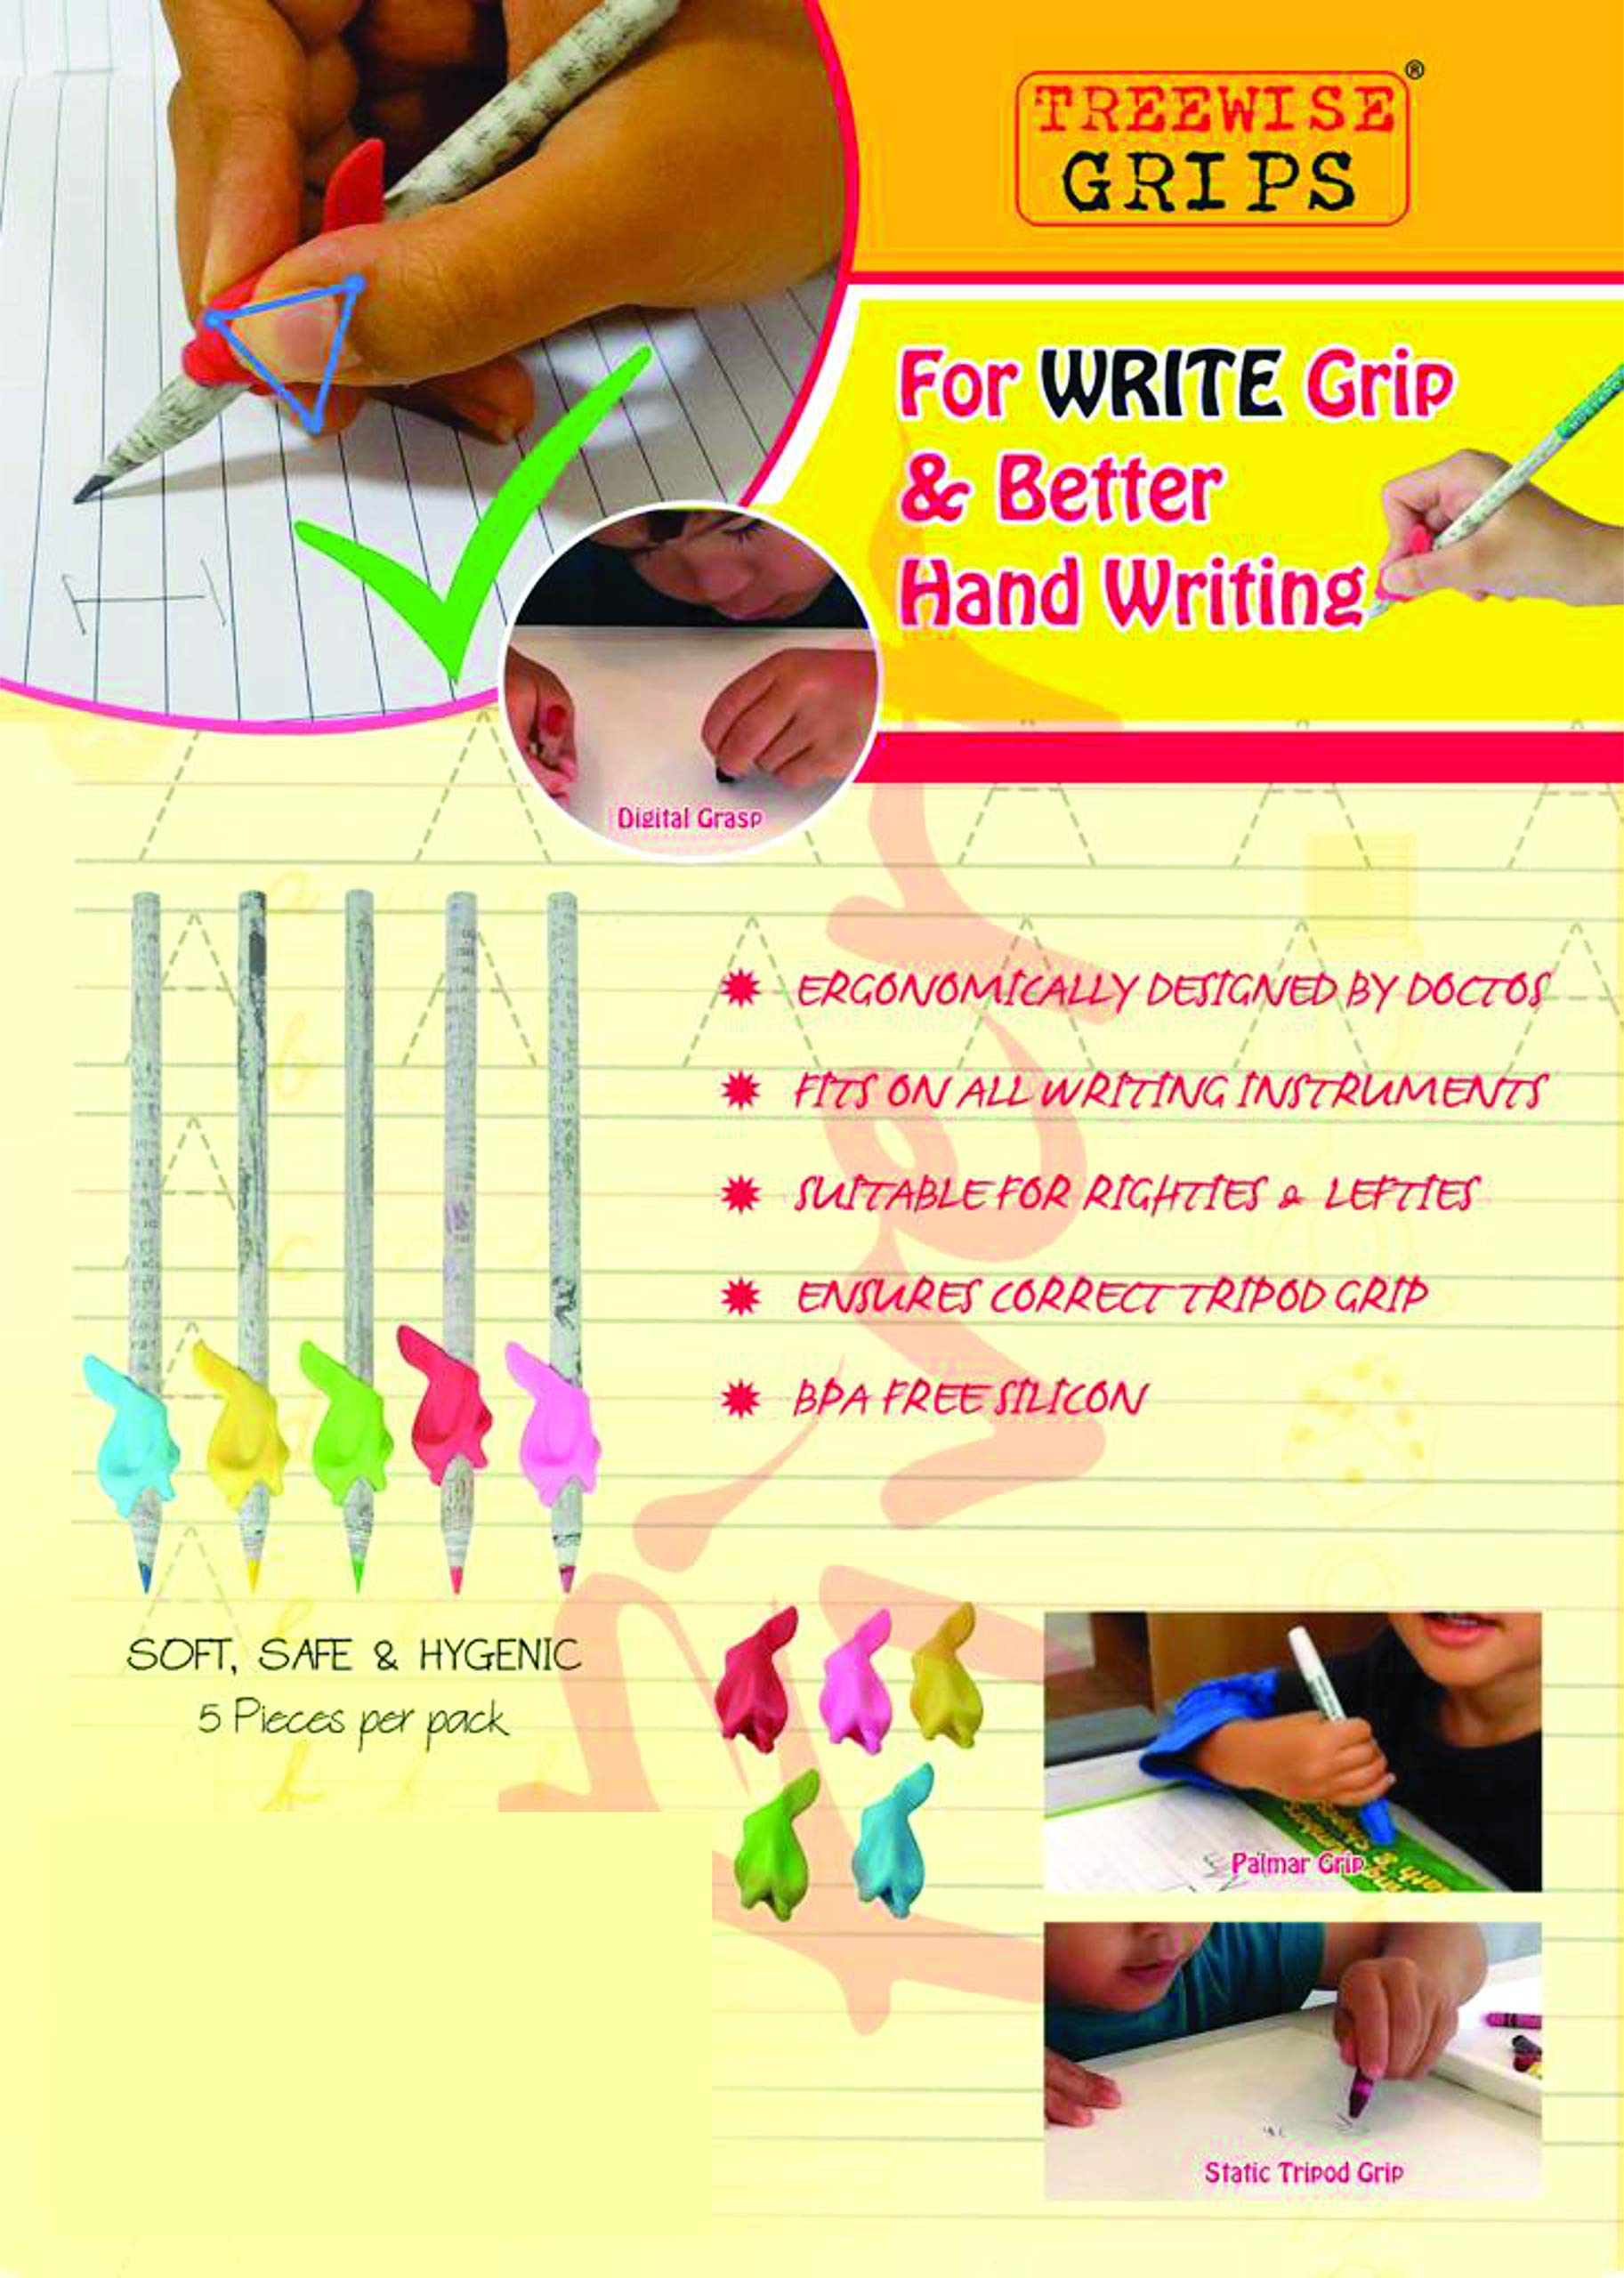 WOOD FREE PLANTABLE PENCIL HB#2 EXTRA DARK 36 Pencils + 5 Silicon Gripers FREE l 100% Recycled Newspapers l 100% Eco Friendly l 5 Assorted Seeds- TOMATO   FENUGREEK   CORIANDER   CHILI   MUSTRAD by SAVE GREEN WORLD (Image #2)